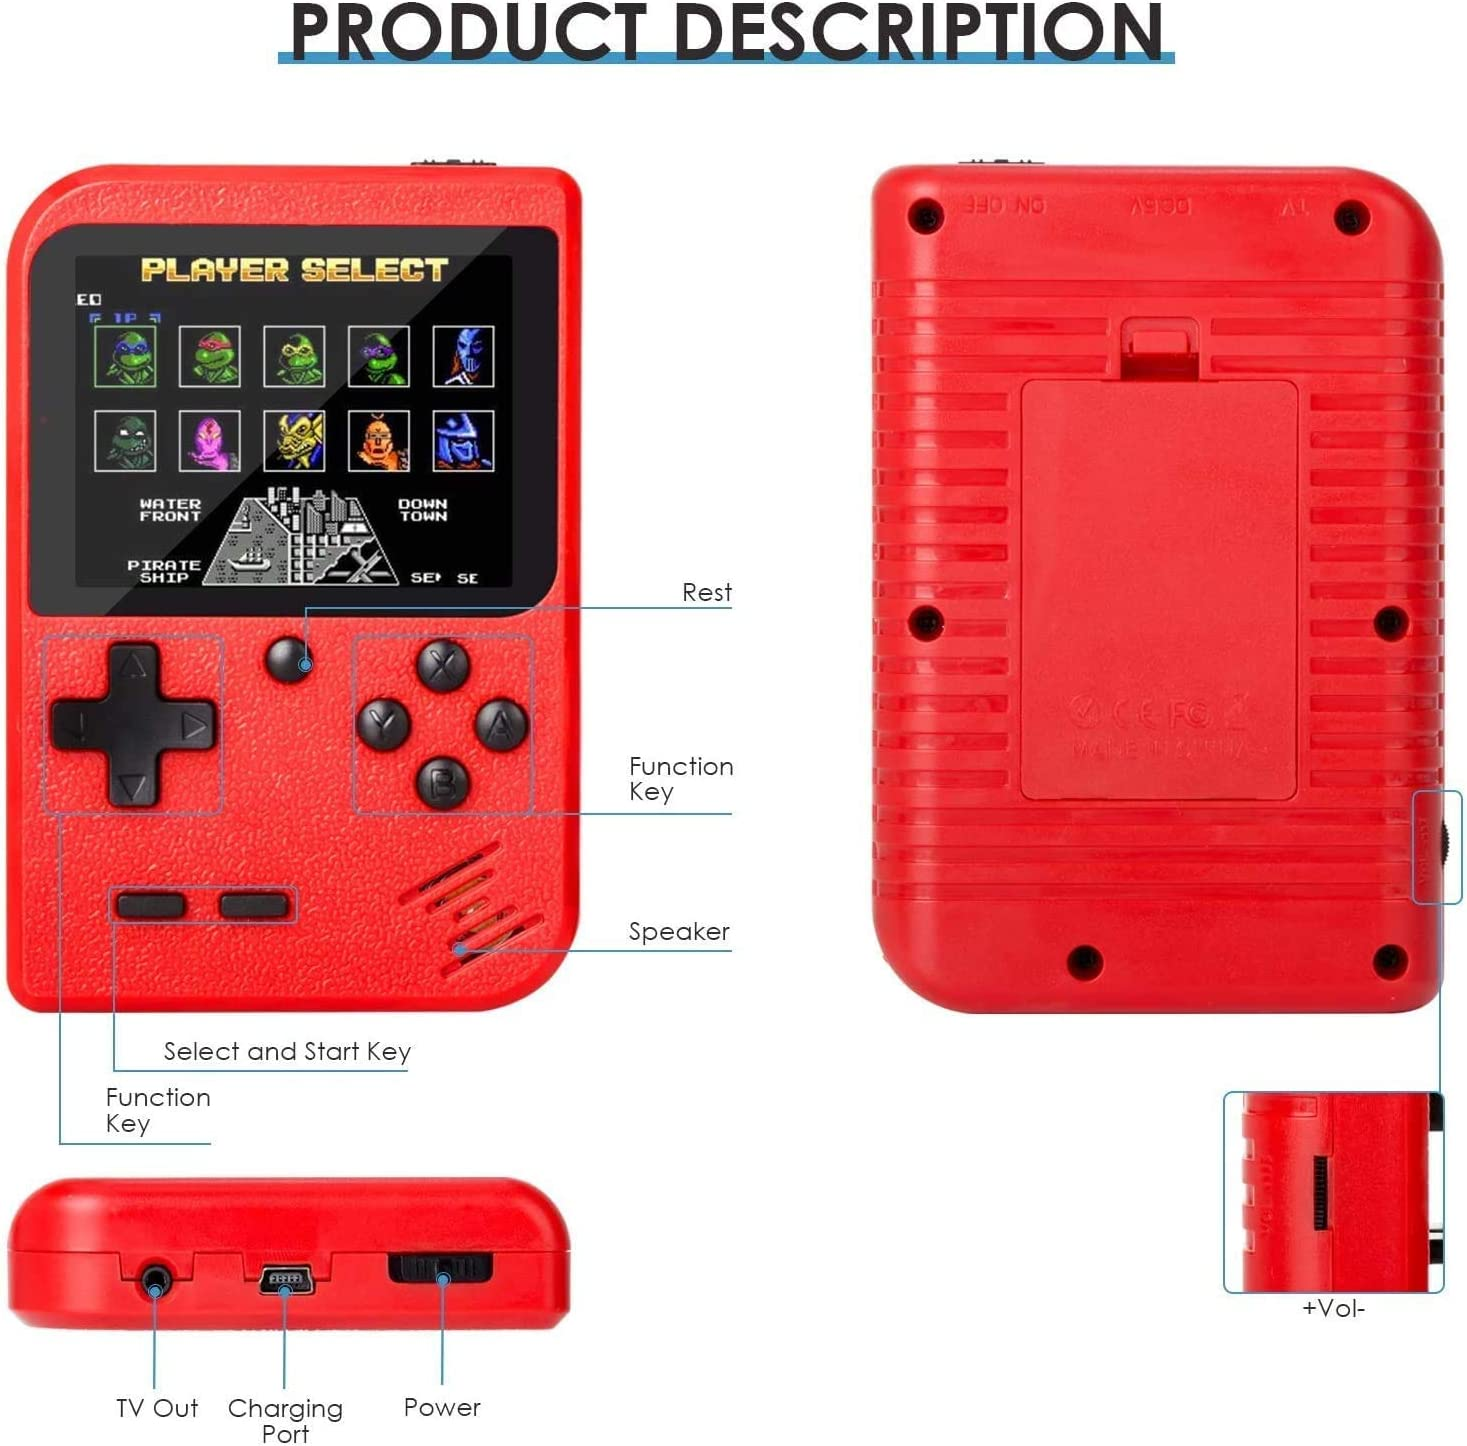 Black Retro Game Console Handheld Game Console Retro Mini Game Player with 500 Classical FC Games 2.8-Inch Color Screen Support for Connecting TV /& Two Players 1000mAh Rechargeable Battery